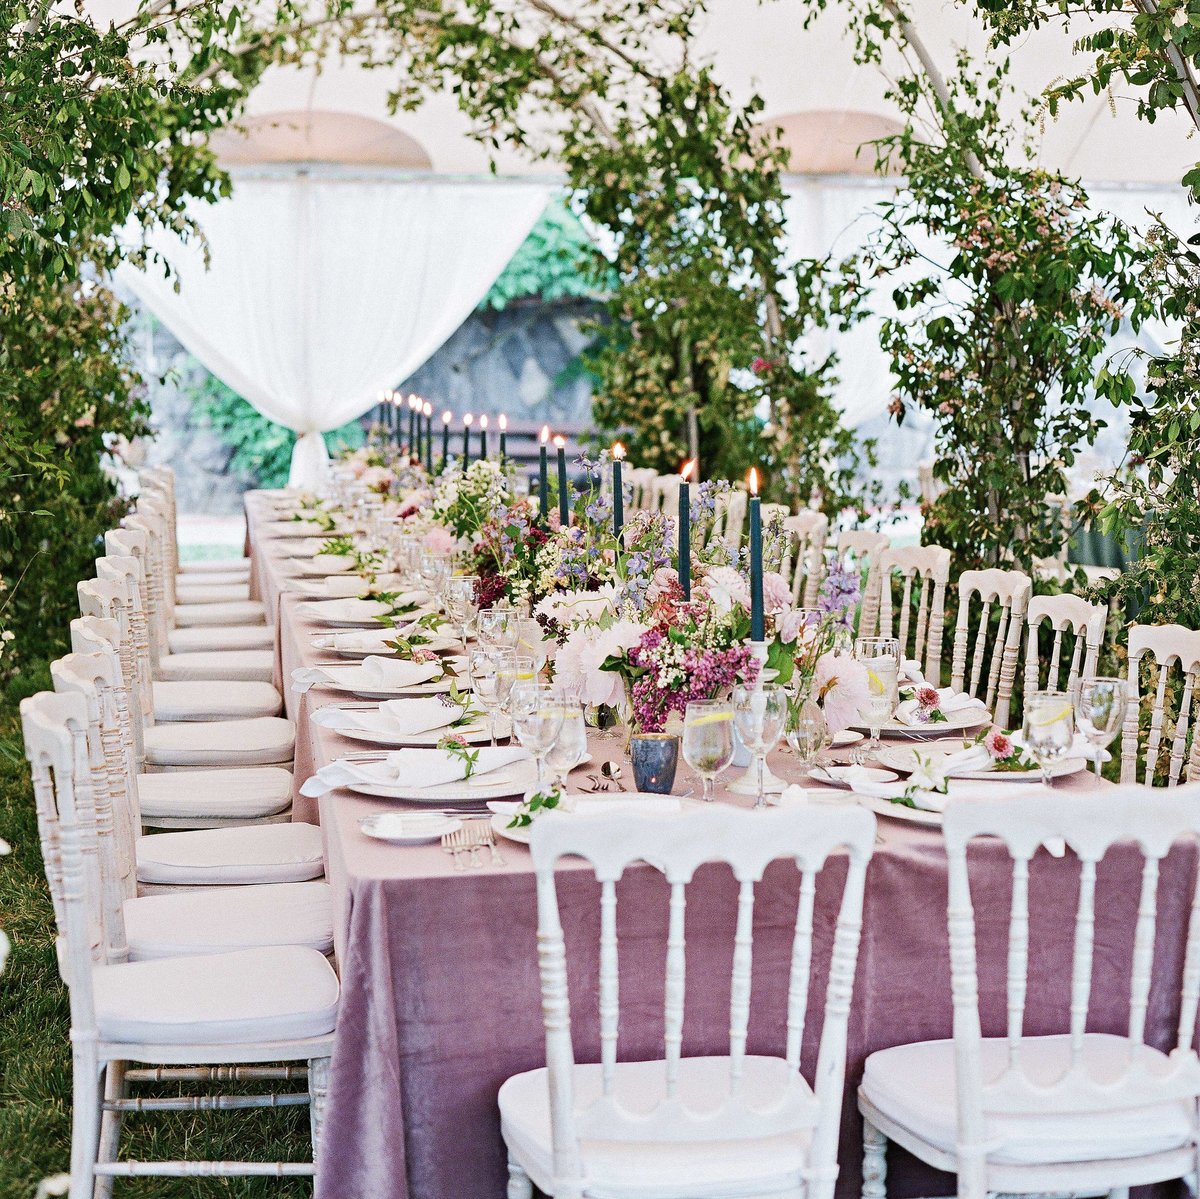 The Wildflowers Wedding Blog Inspiration Stylish Fun Contemporary Weddings Attainable Planning Advice Rebecca Marin Shepherd13